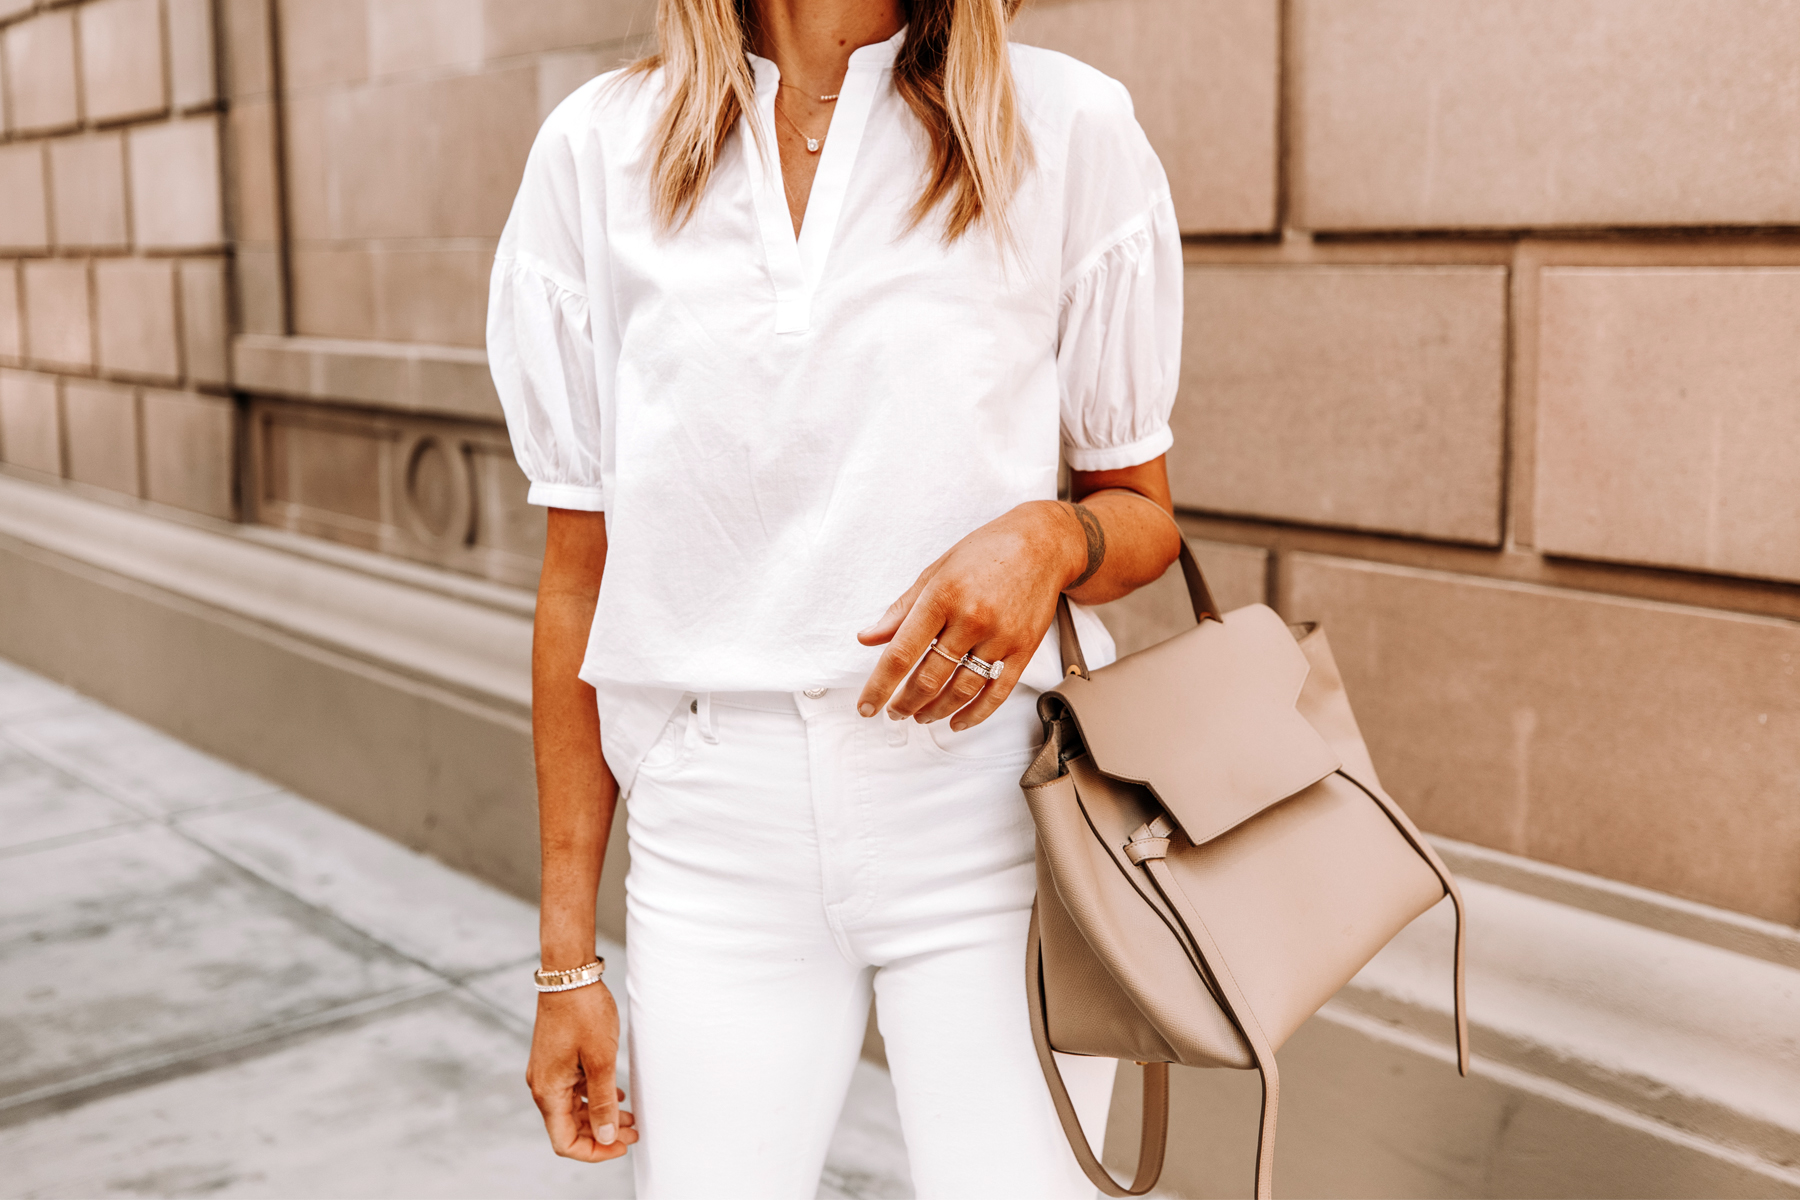 Fashion Jackson Wearing Everlane White Puff Sleeve Top White Skinny Jeans Celine Belt Bag